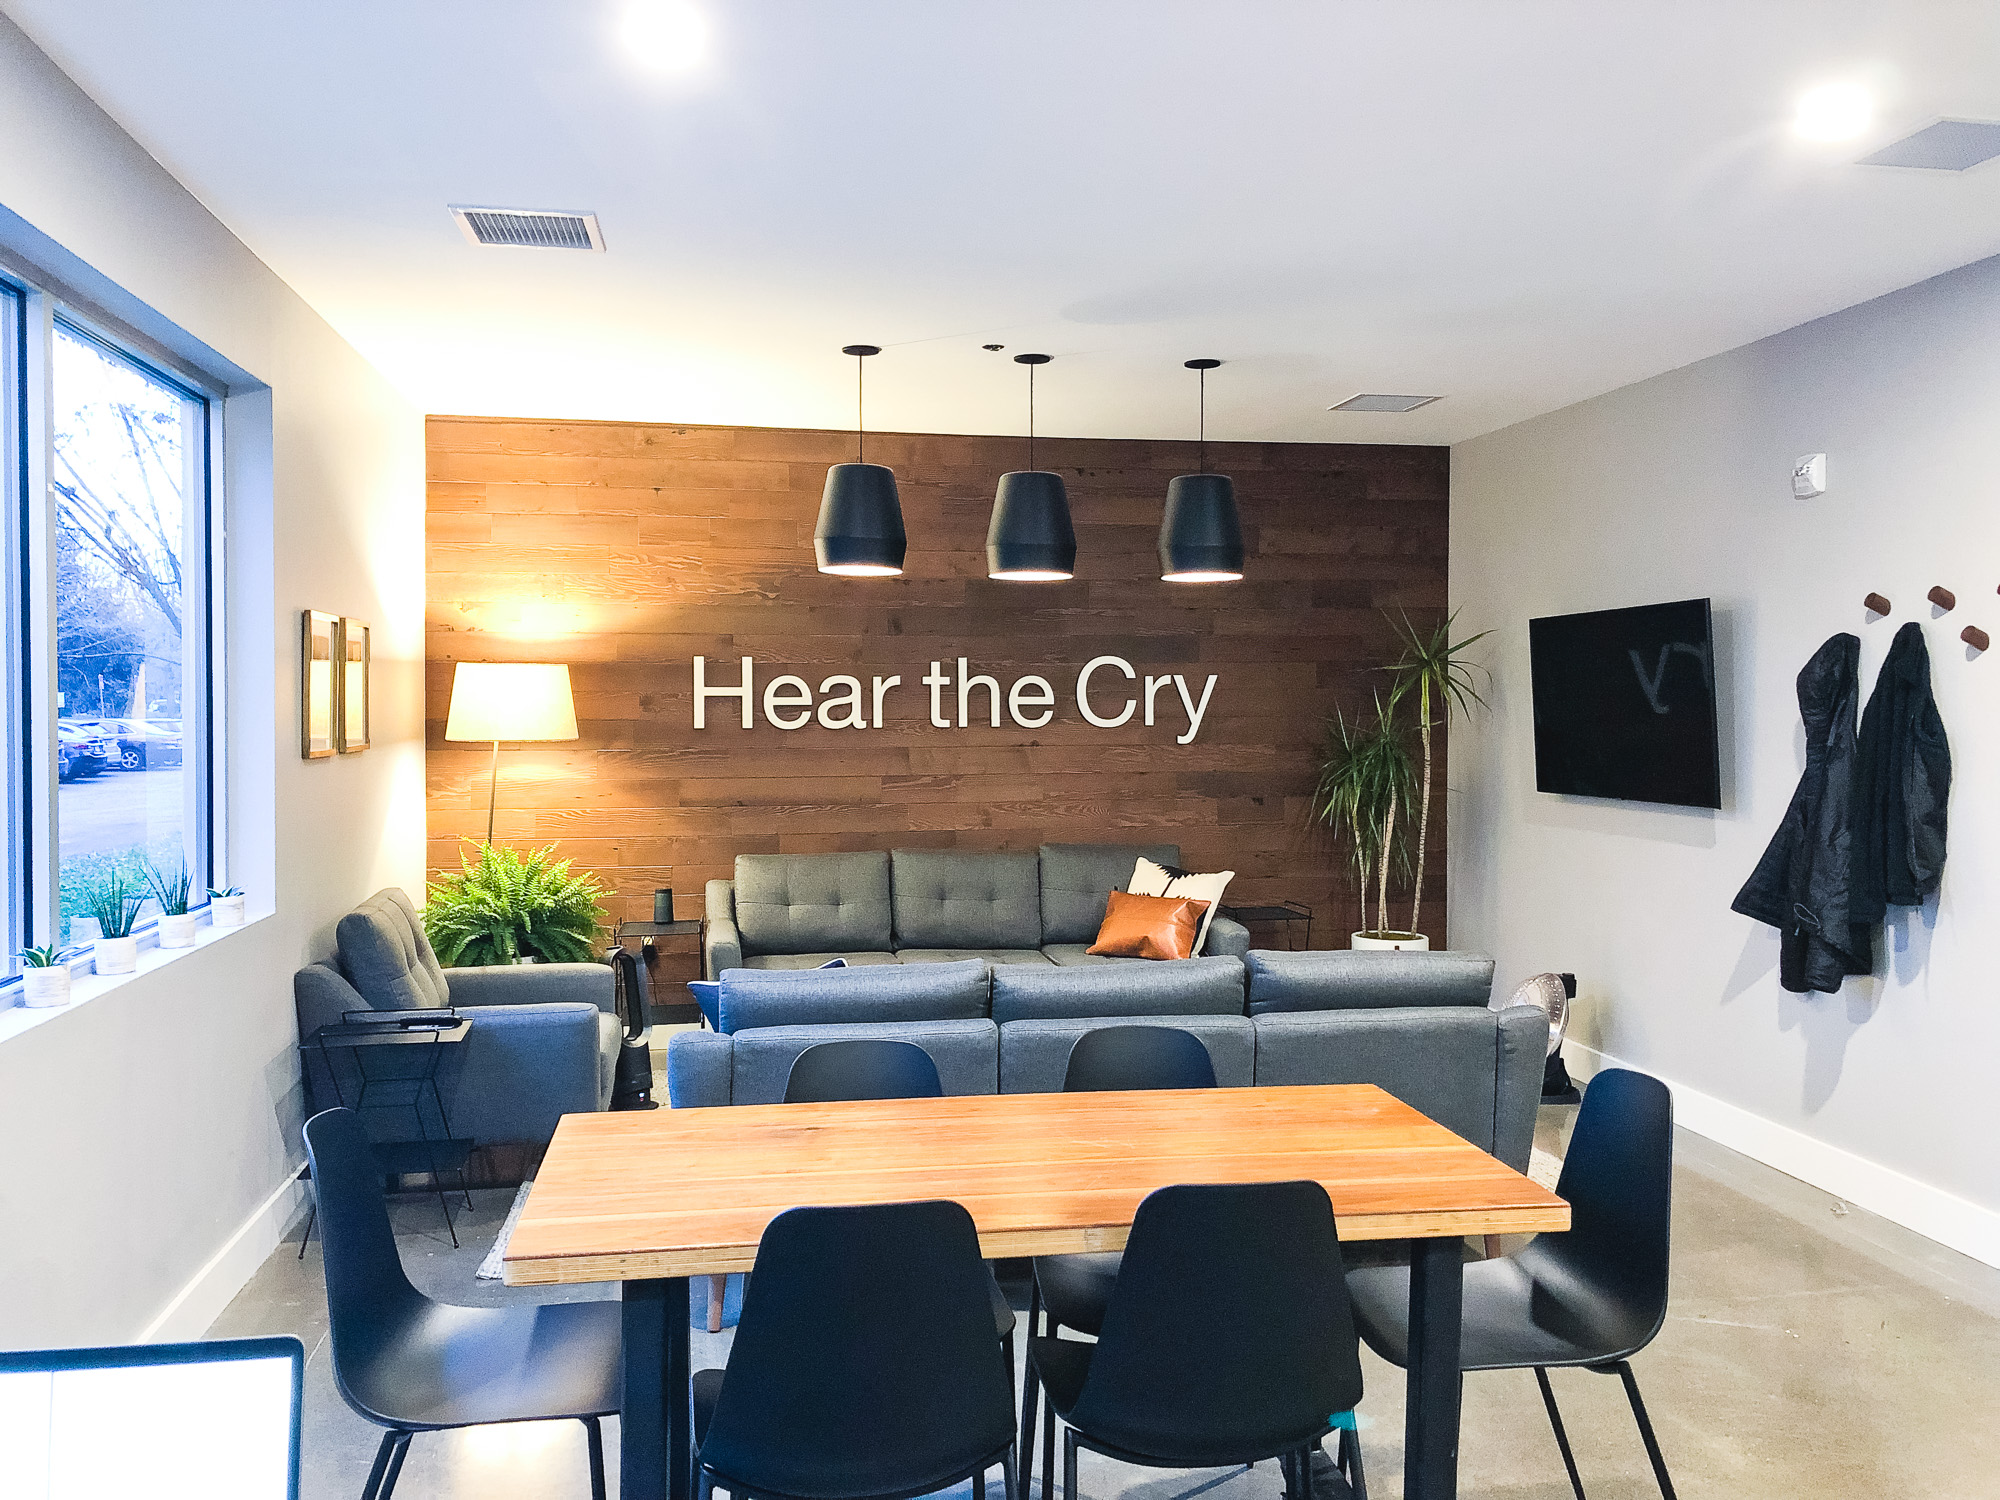 White letters for reclaimed wood wall for Hear The Cry, an organization bringing hope and a future to women and children through grass roots efforts in areas of need.